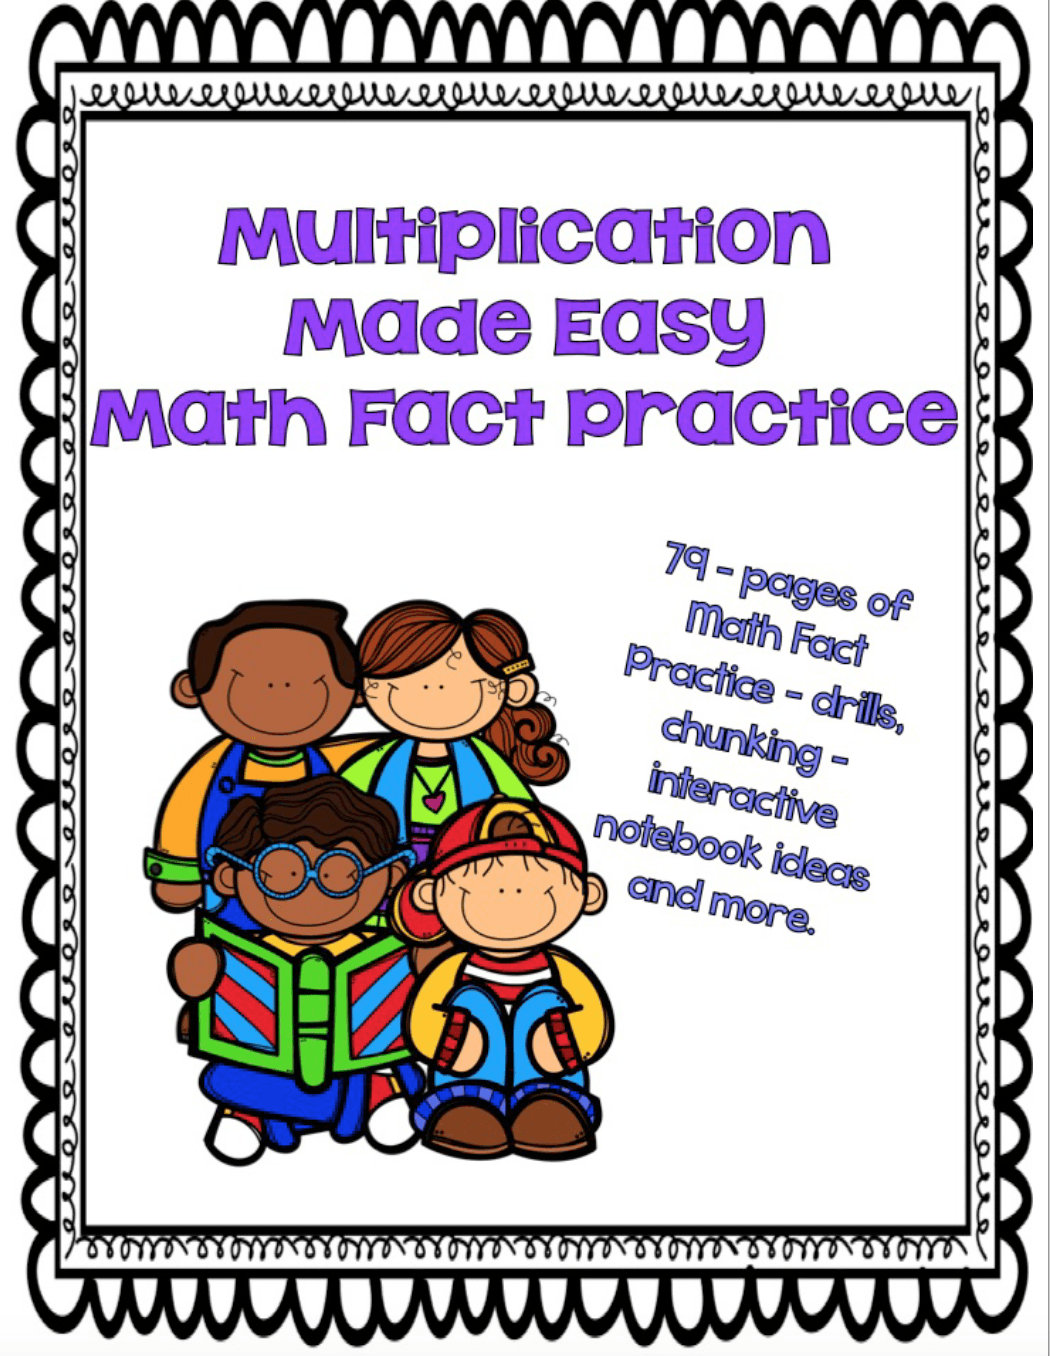 Multiplication Facts Made Easy: Math Fact Practice Chunking   Math ...